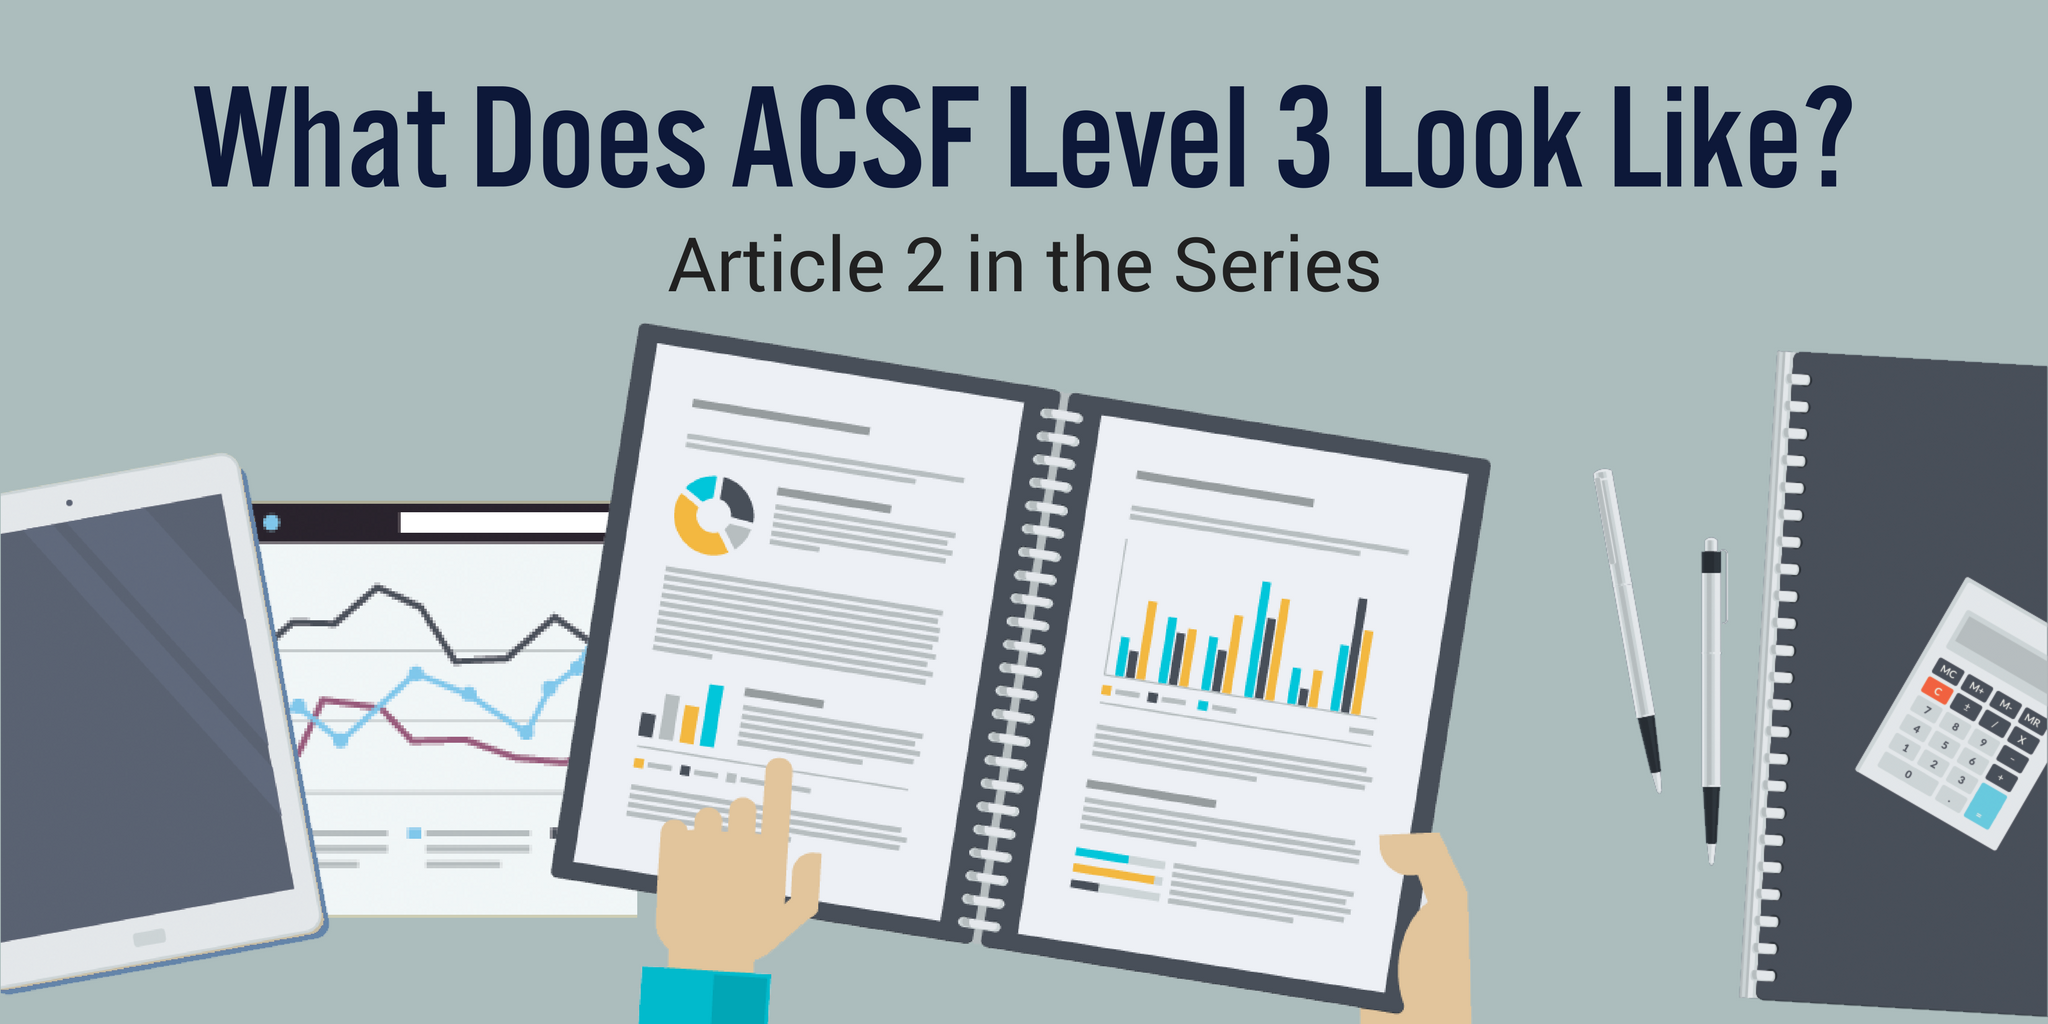 What Does ACSF Level 3 Look Like?